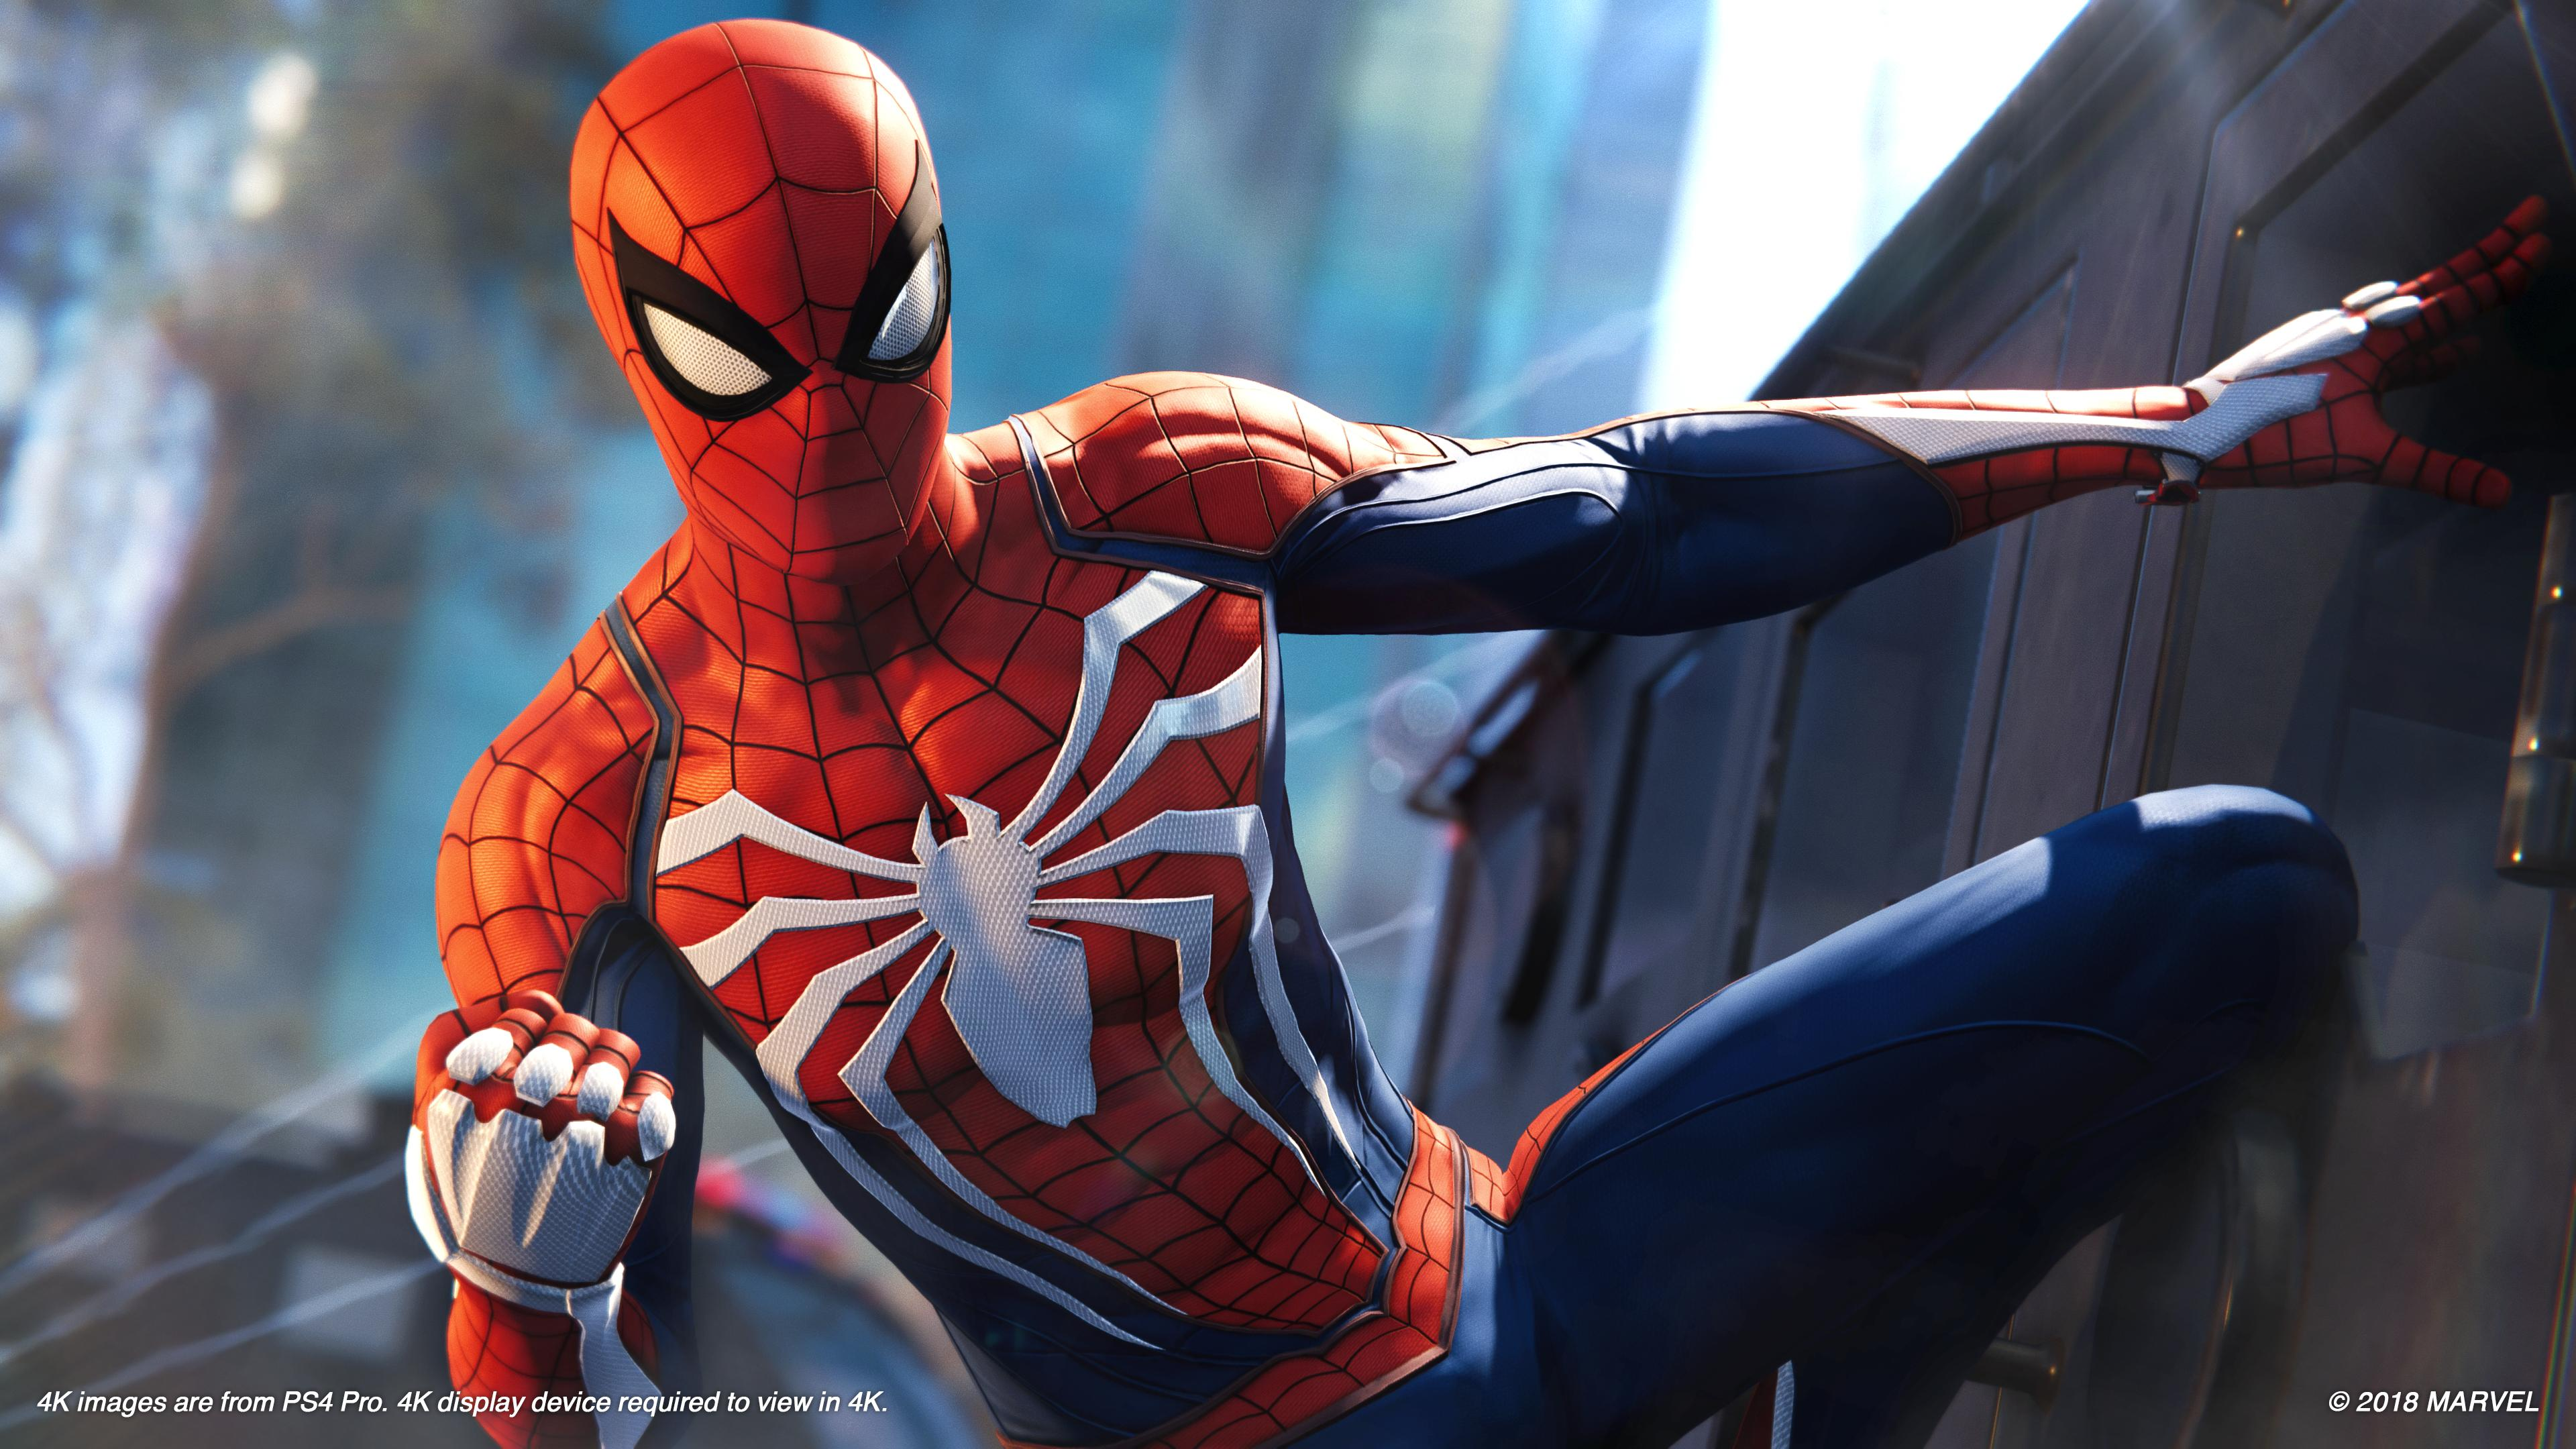 Marvel's Spider-Man is shaping up very nicely indeed